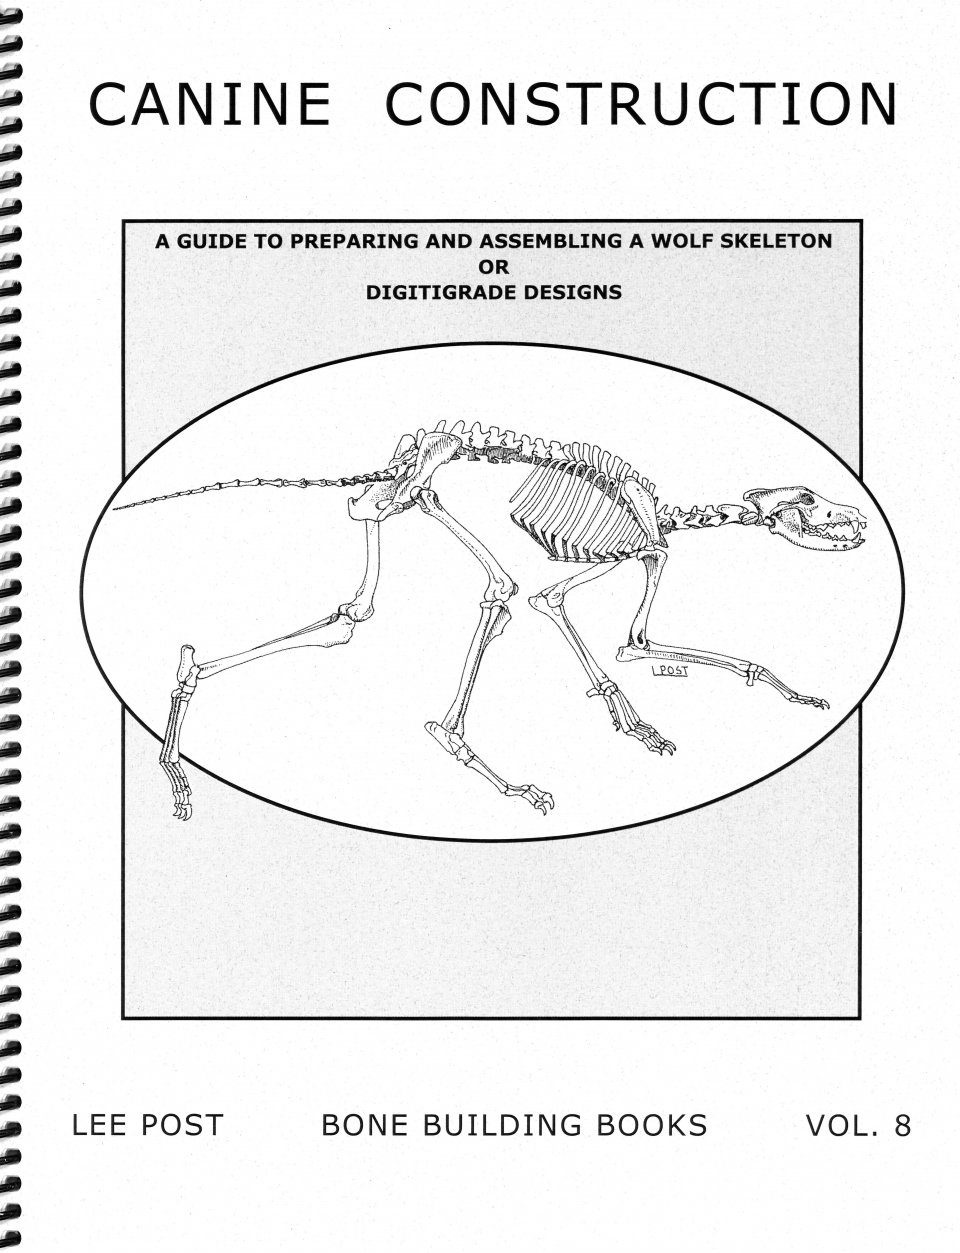 Bone Building Books, Volume 8: Canine Construction